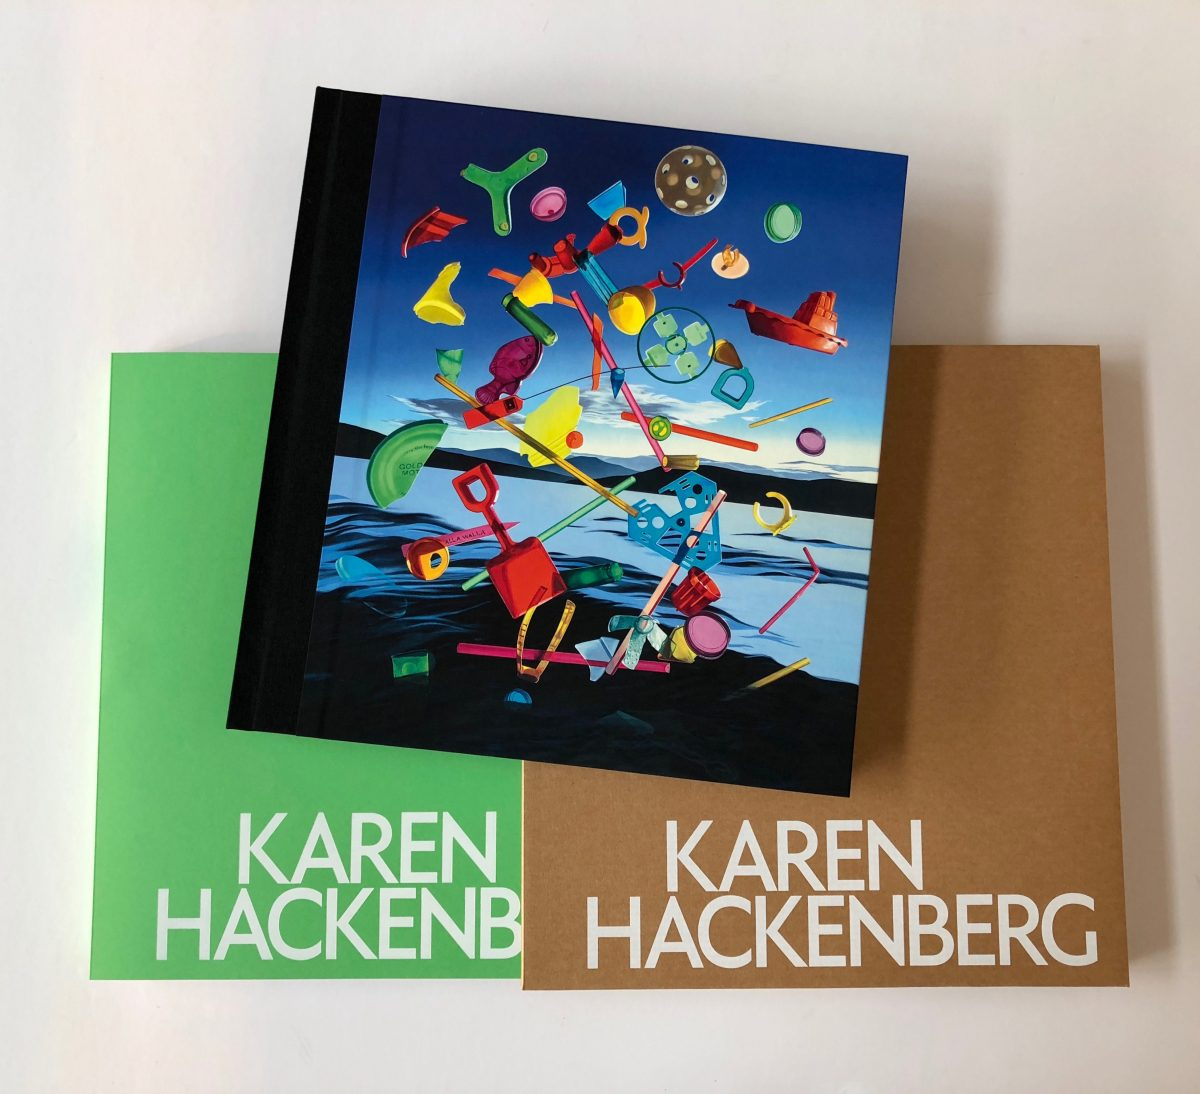 Hackenberg_Hardcover and softcover books_stacked flat